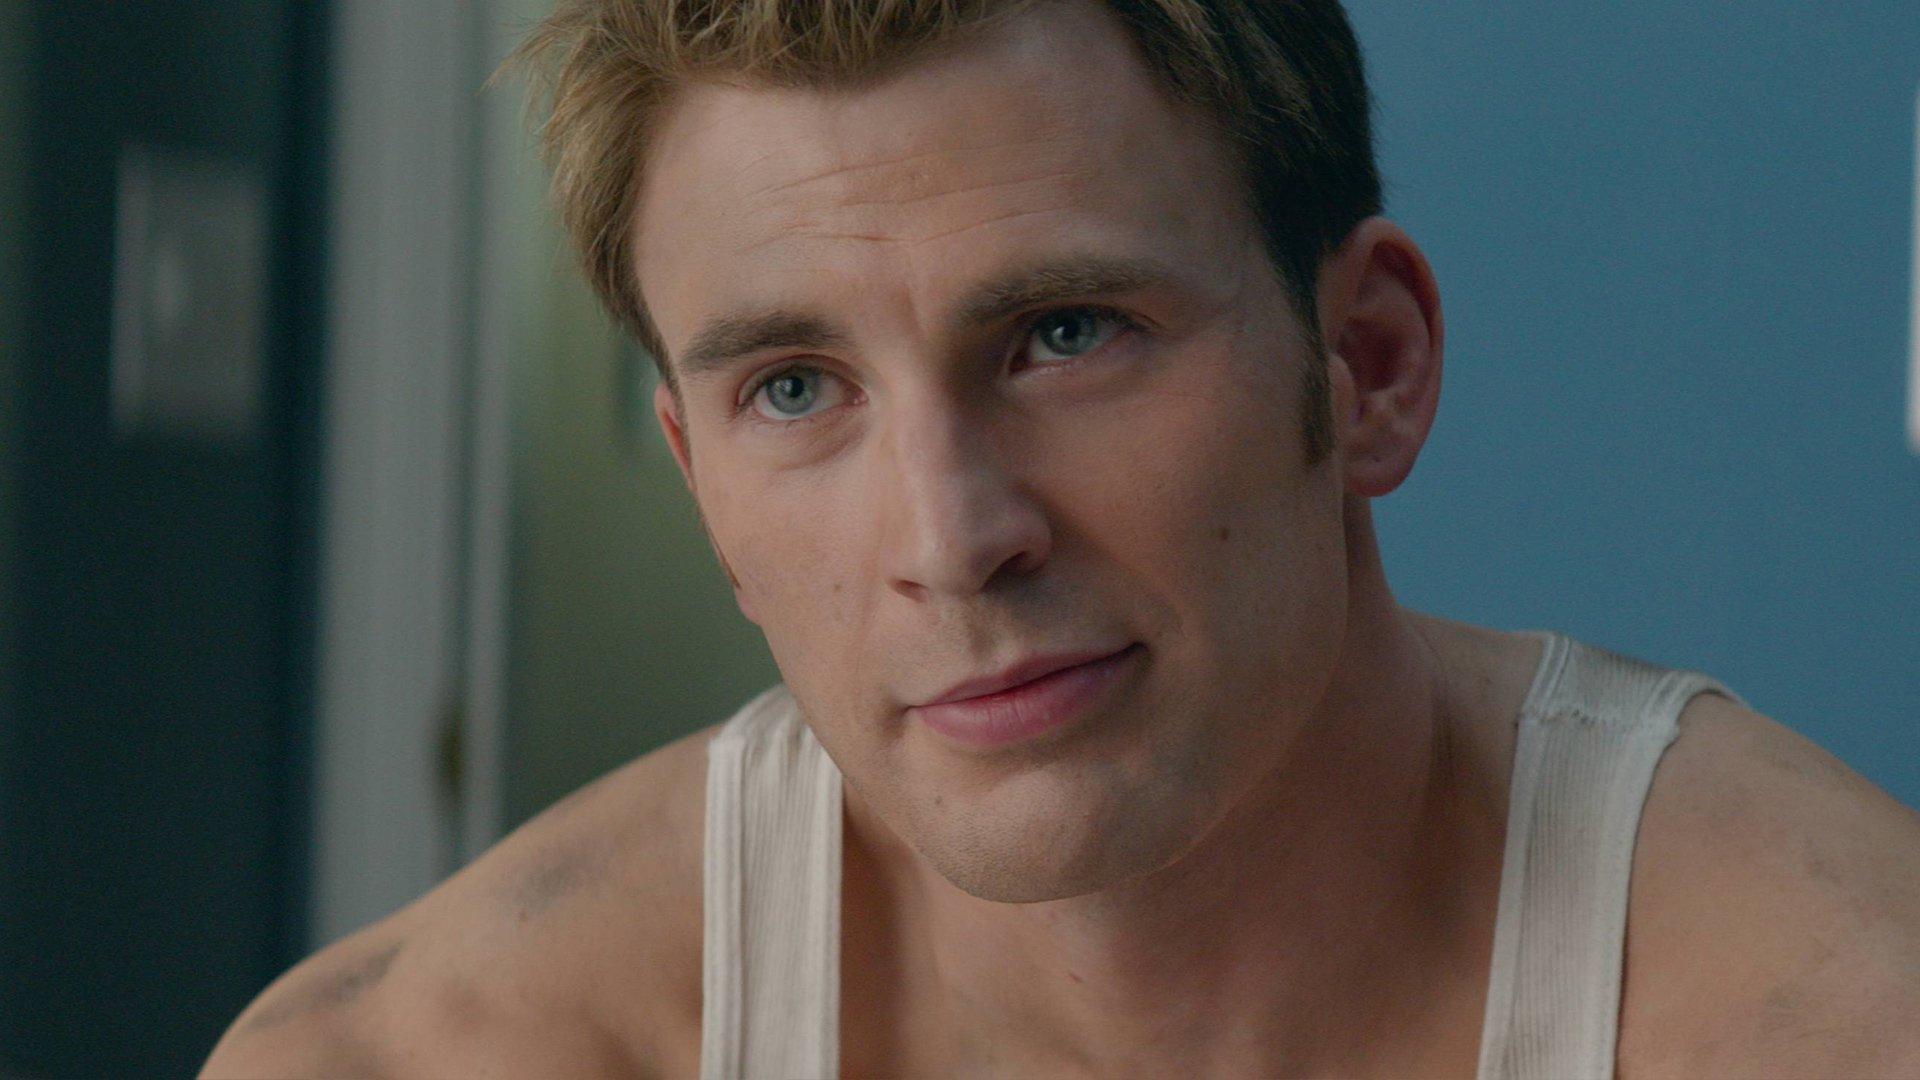 Chris evans captain america body obvious